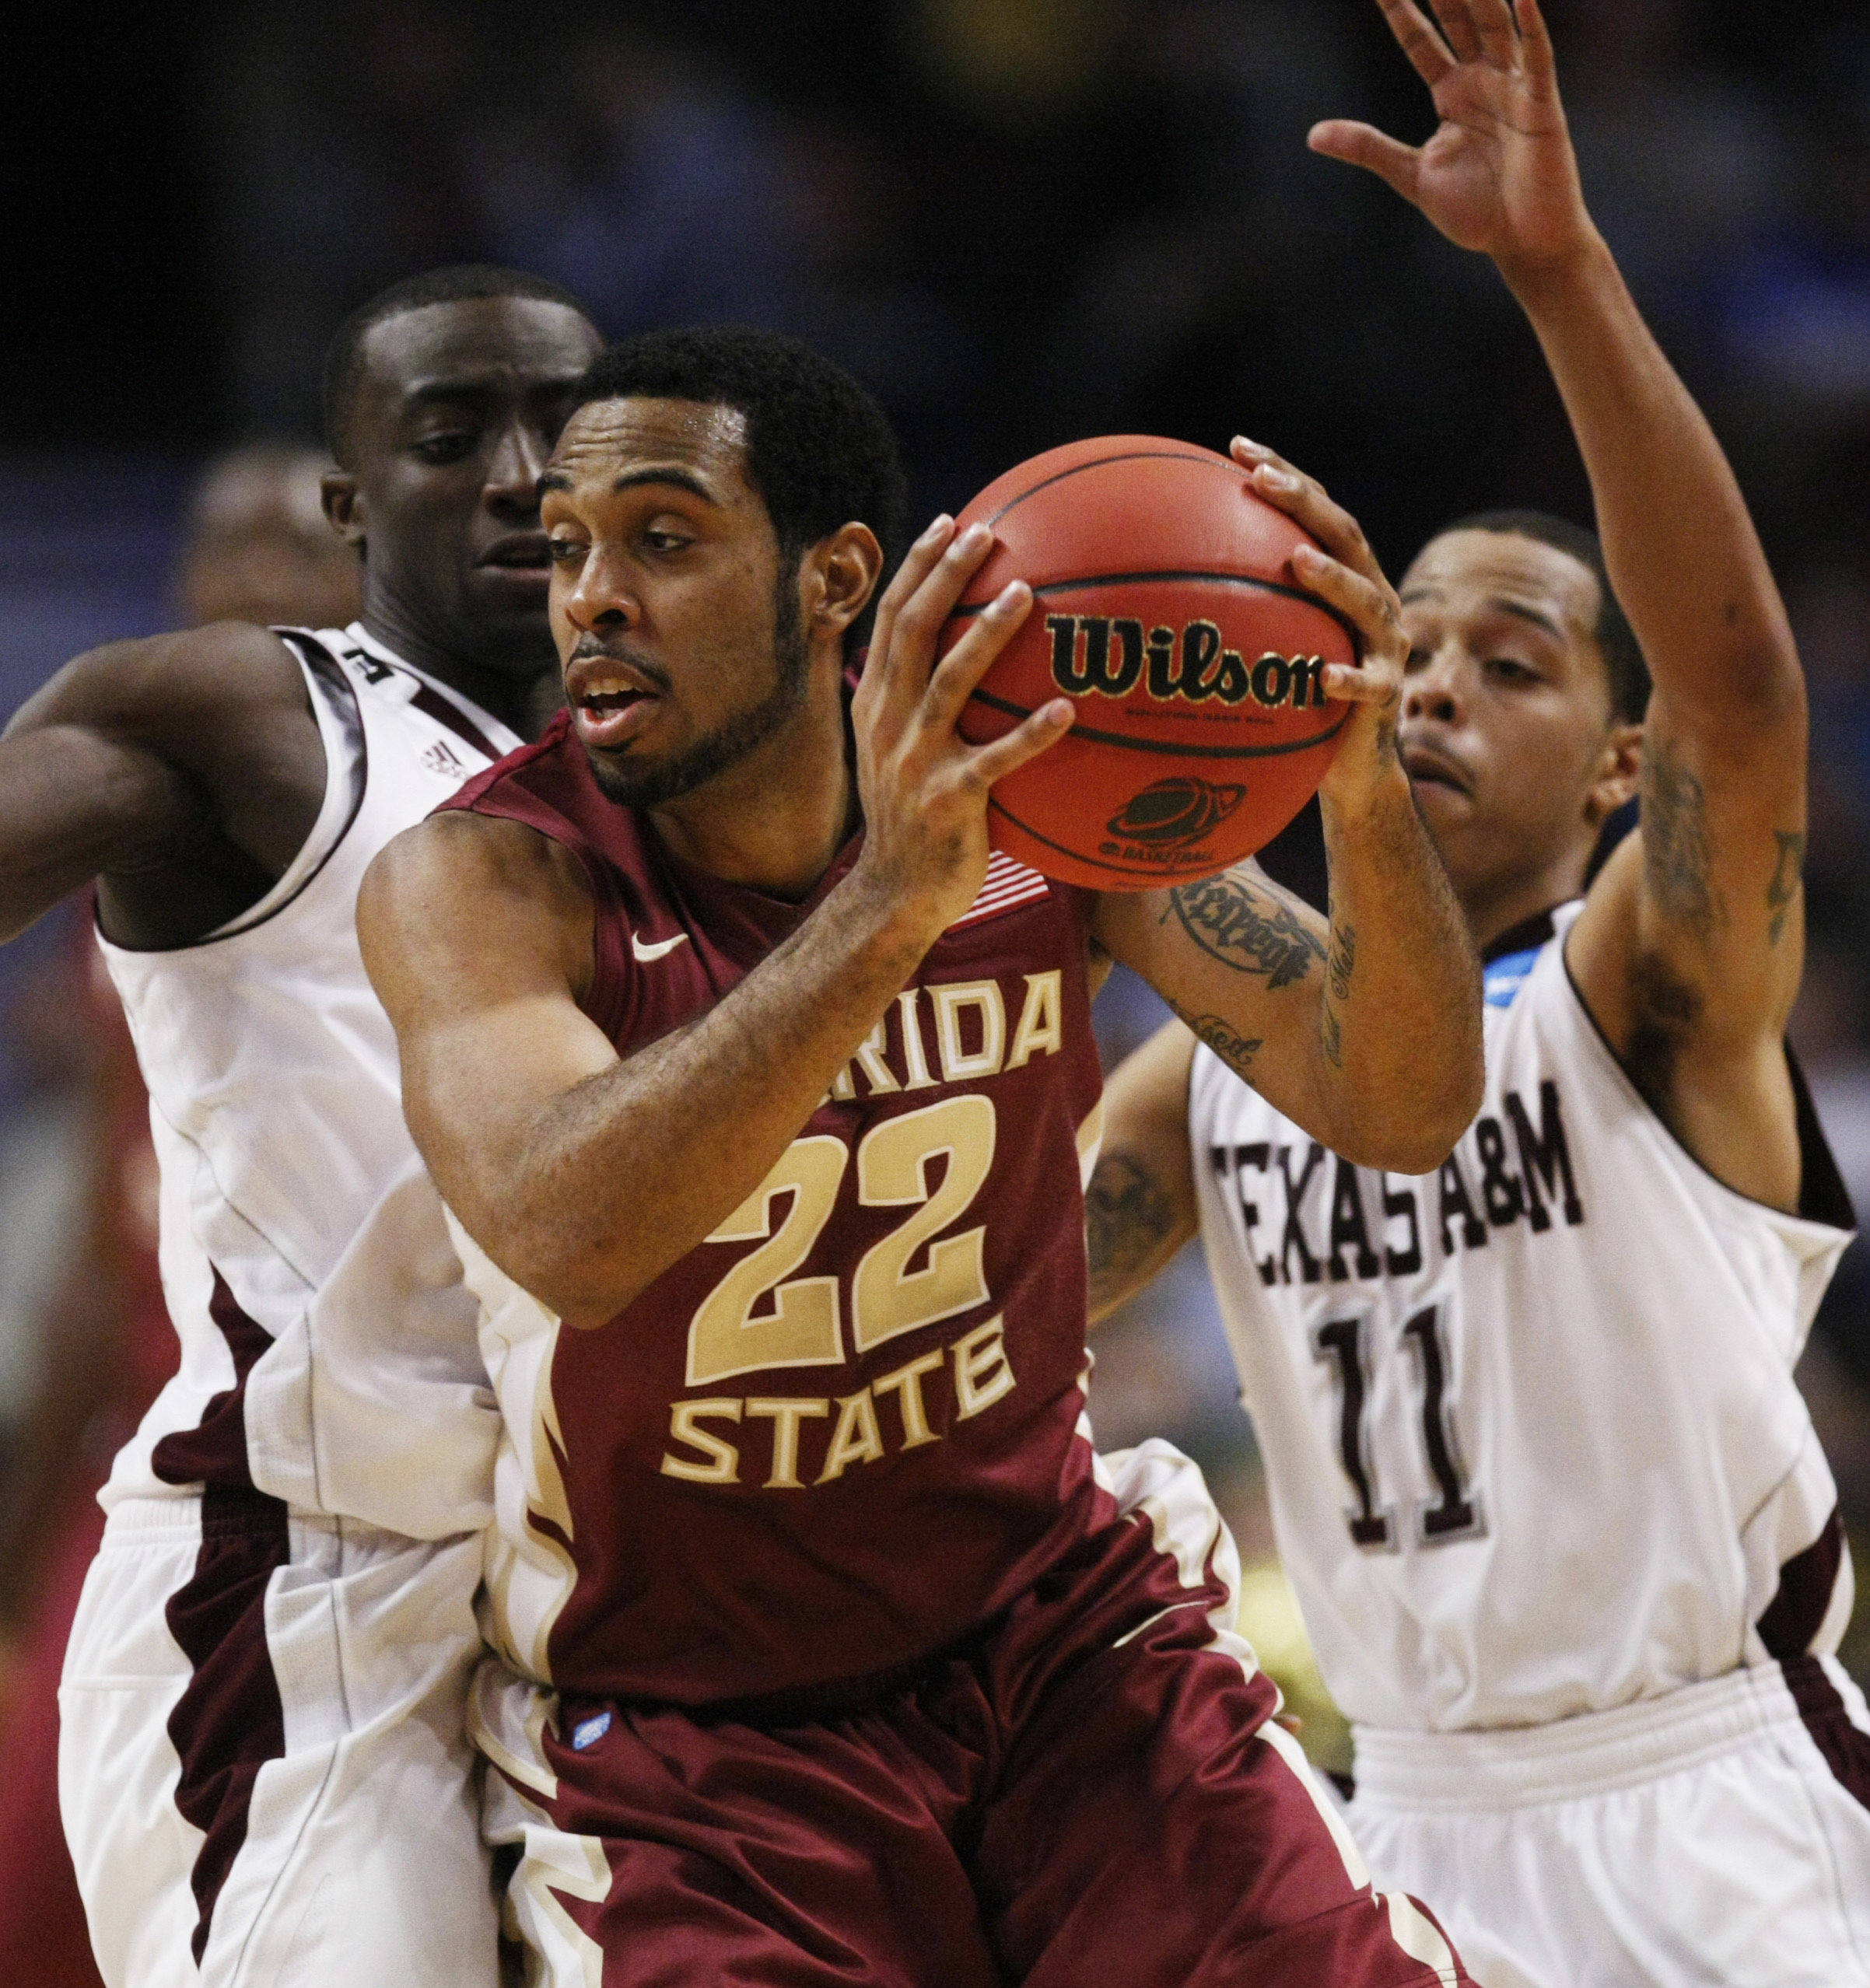 Florida State's Derwin Kitchen is defended by Texas A&M's Andrew Darko, left, and B.J. Holmes in the second half of a second-round NCAA Southwest Regional tournament college basketball game in Chicago, Friday, March 18, 2011. Kitchen was high scorer for Florida State with 15 points in their 57-50 win. (AP Photo/Charles Rex Arbogast)